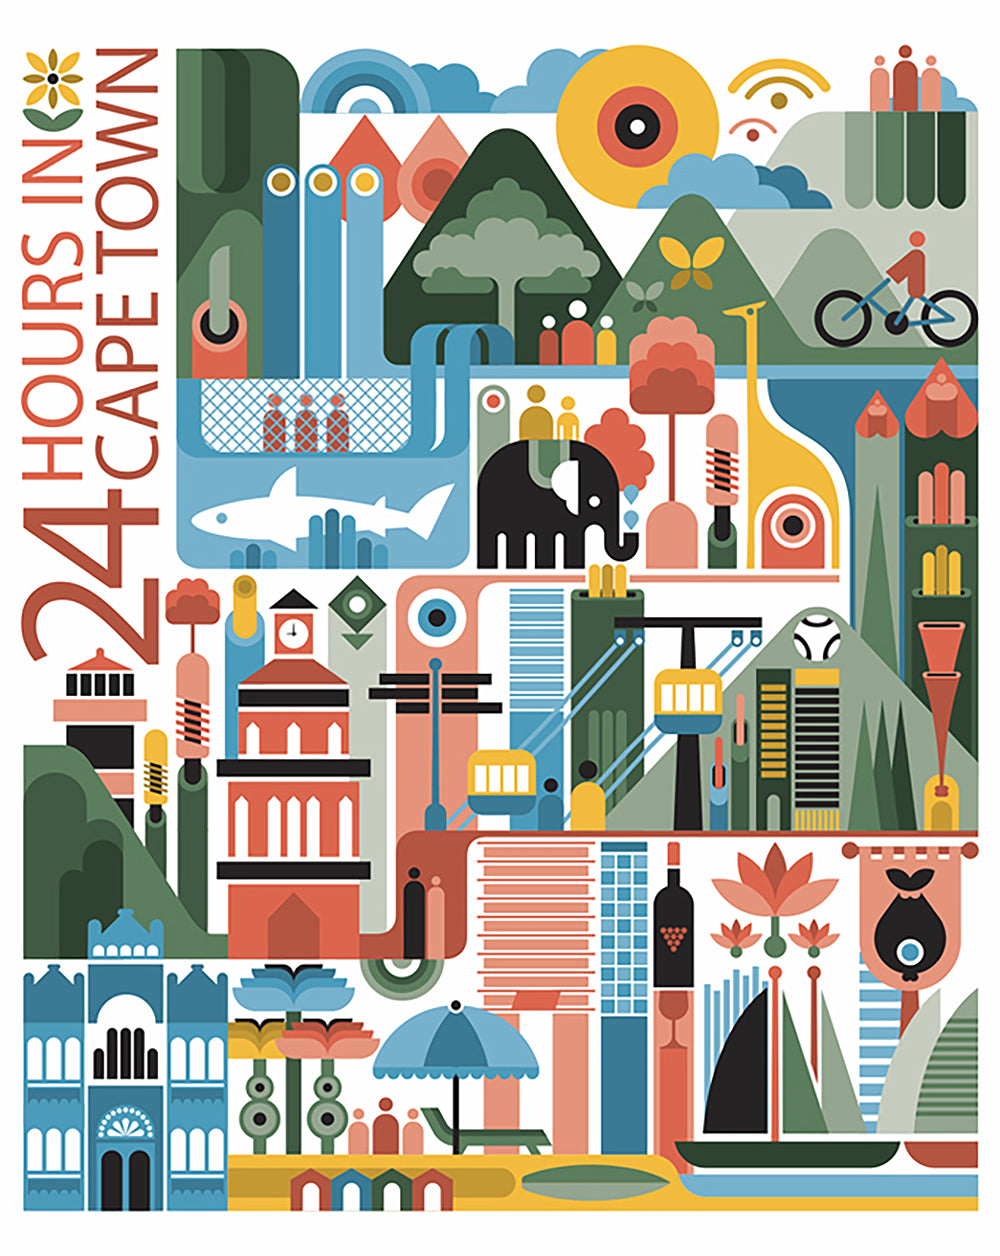 Safari Journal / Blog by Safari Fusion | 24 hours in Cape Town | Modern travel posters by graphic designer Fernando Volken Togni